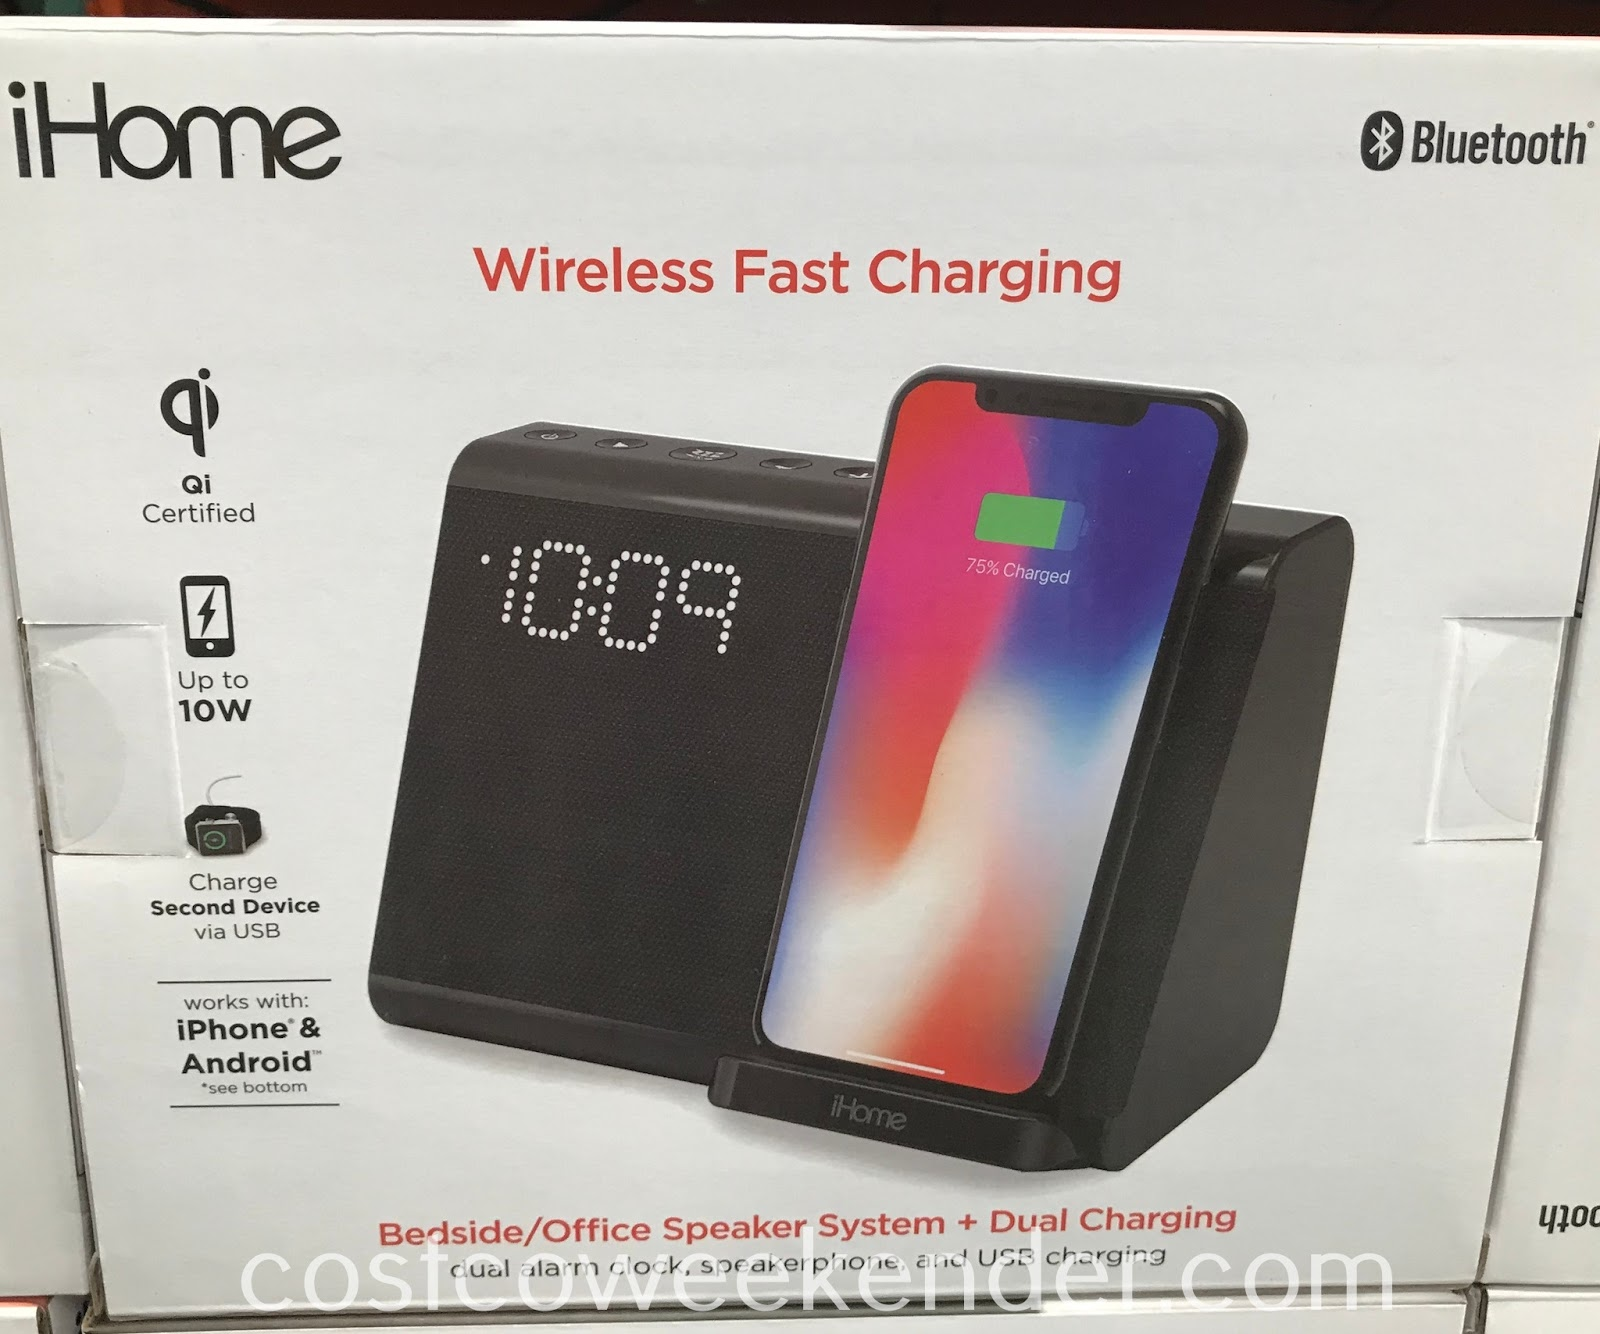 Wirelessly charge your phone with the iHome IBTW390 Dual Alarm Clock with Qi Charging